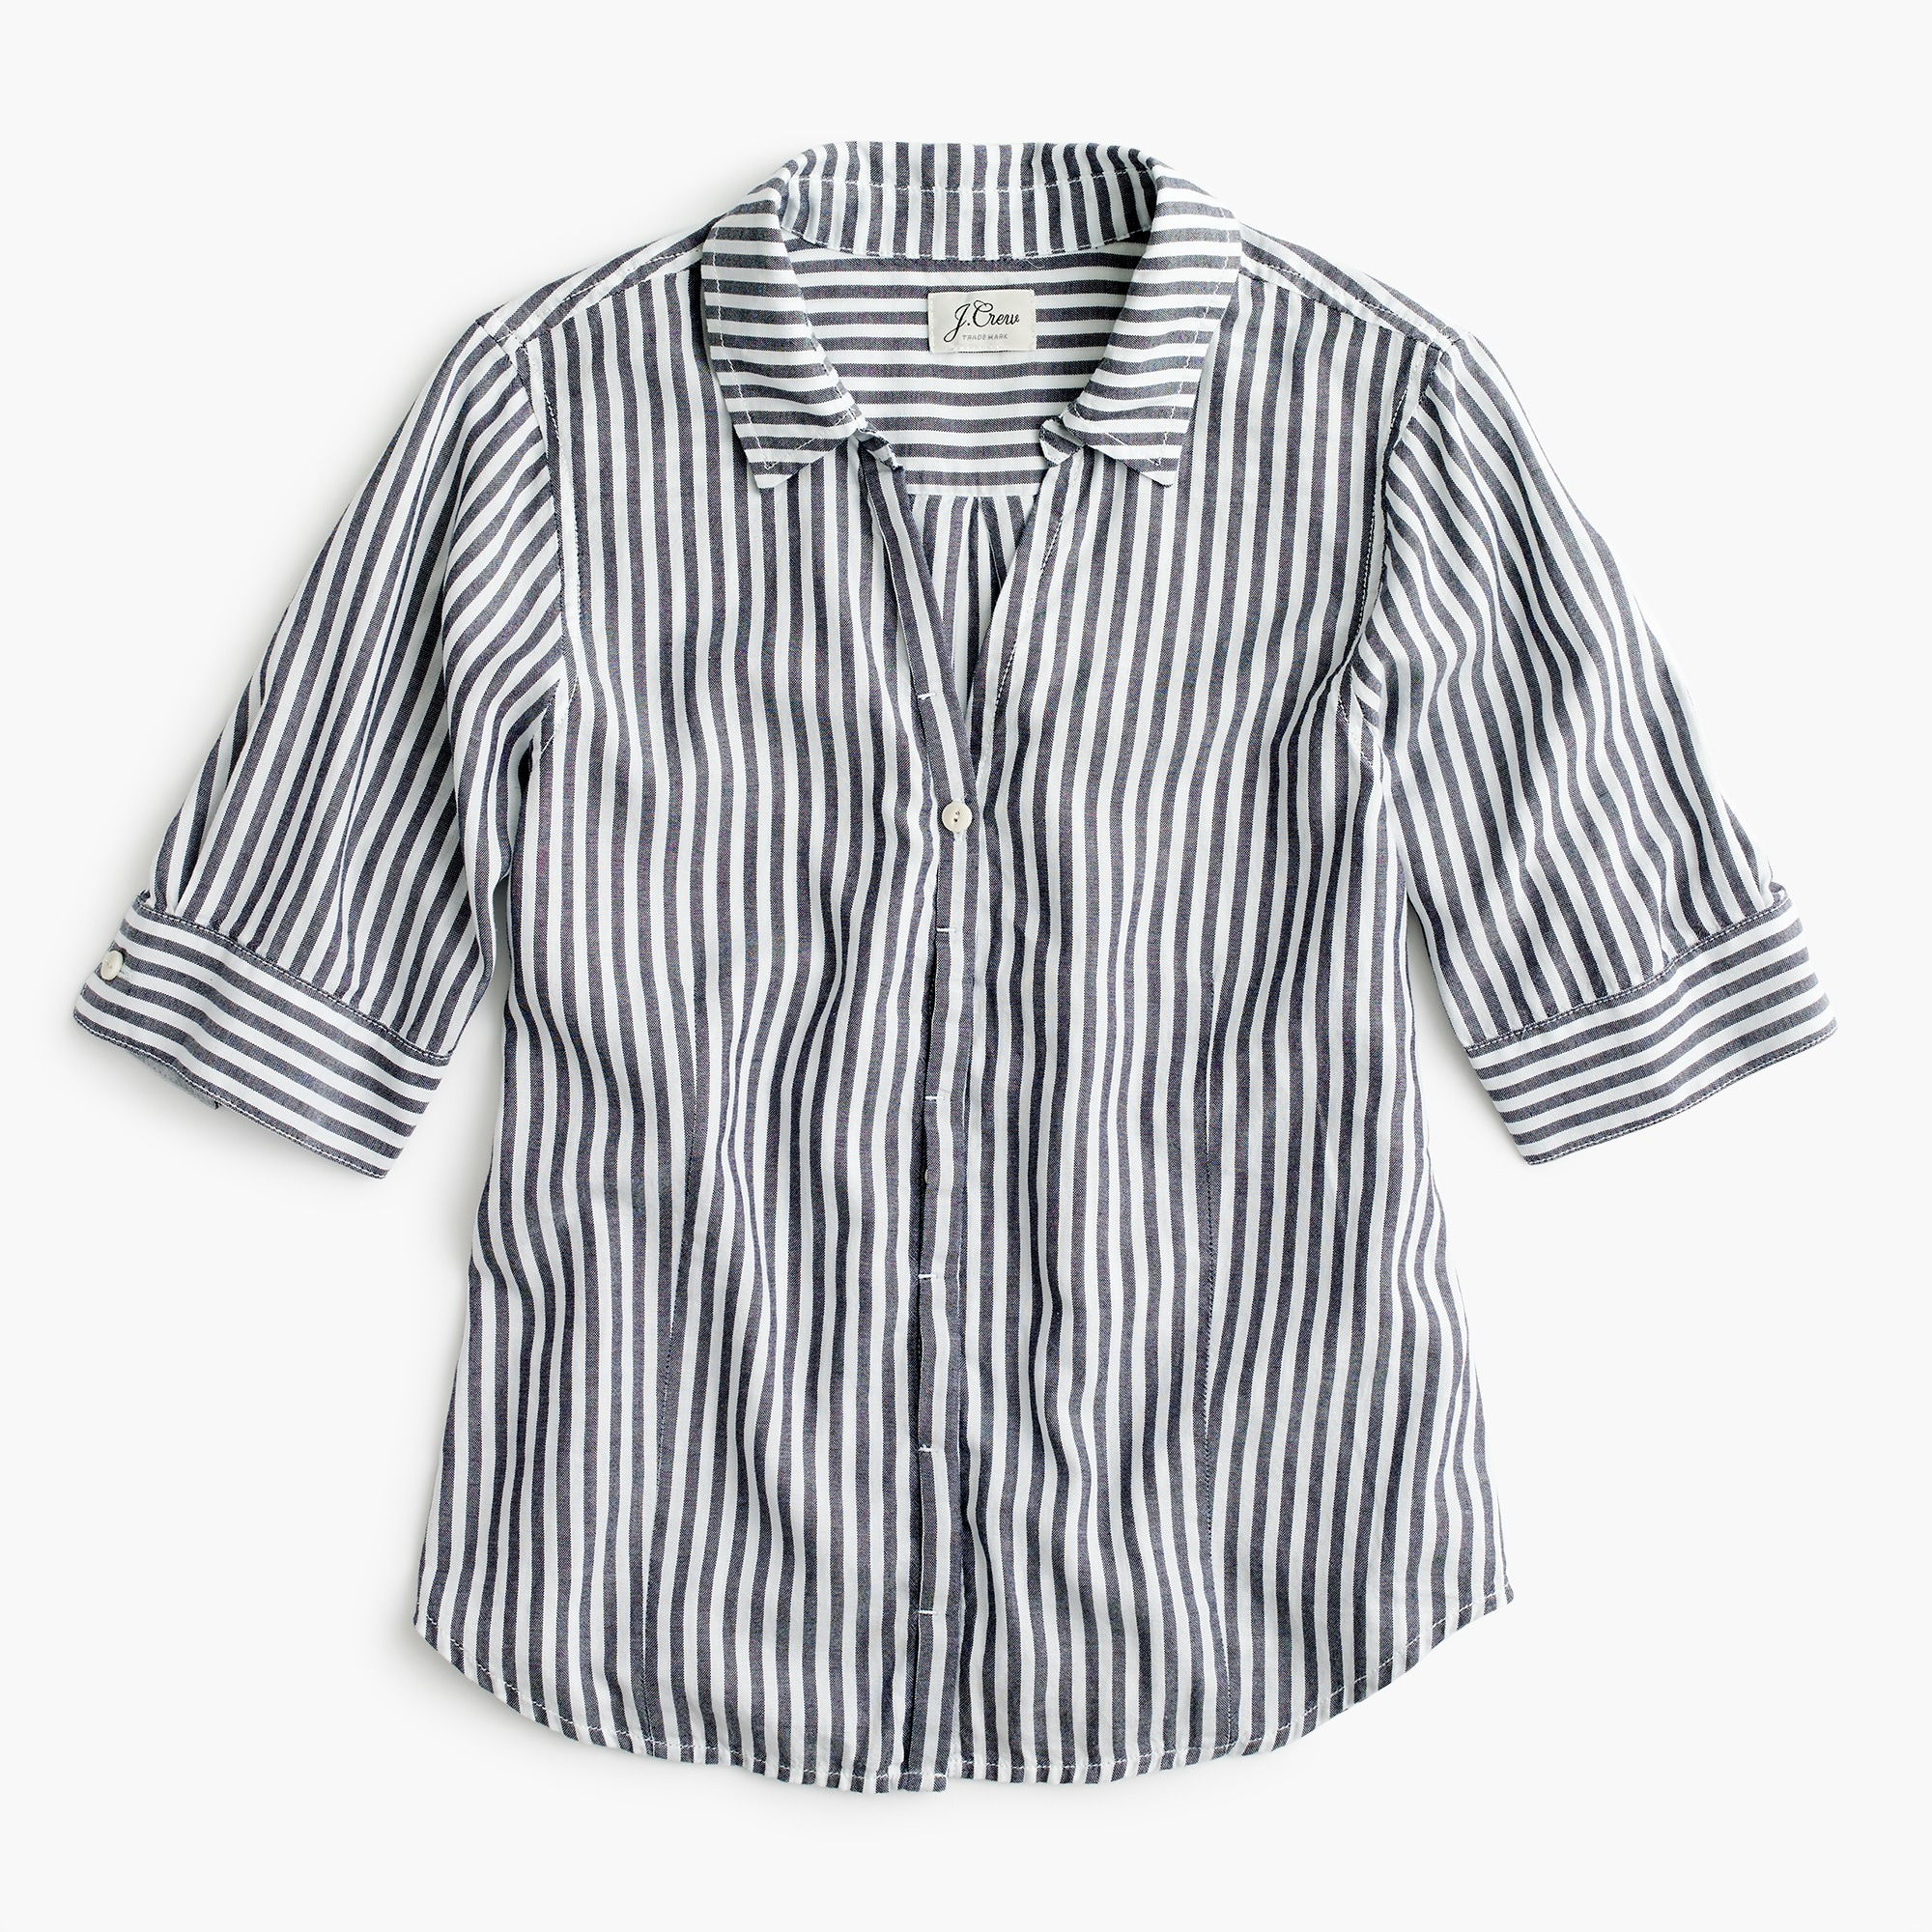 Petite short-sleeve button-up shirt in stripe